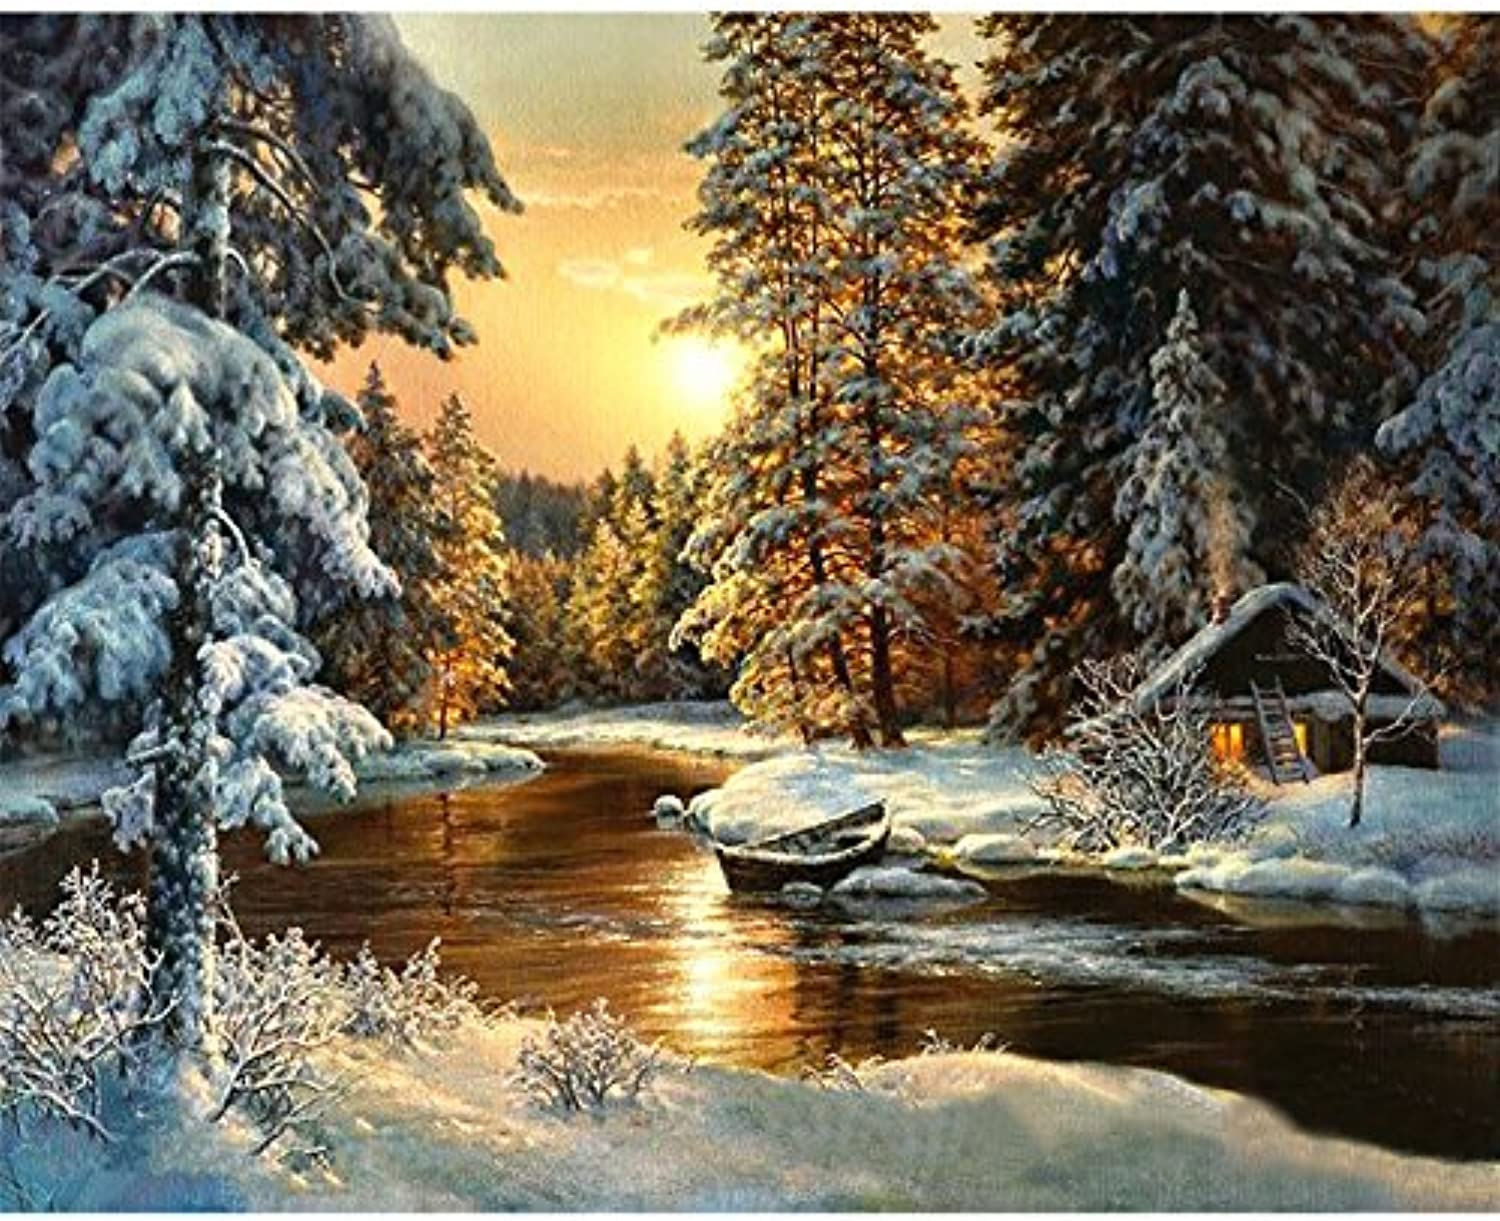 Tuwba Paint by Numbers Adult Kit Sunset Snow Scene Scenery Beginner Acrylic On Canvas,Framed 40X50Cm